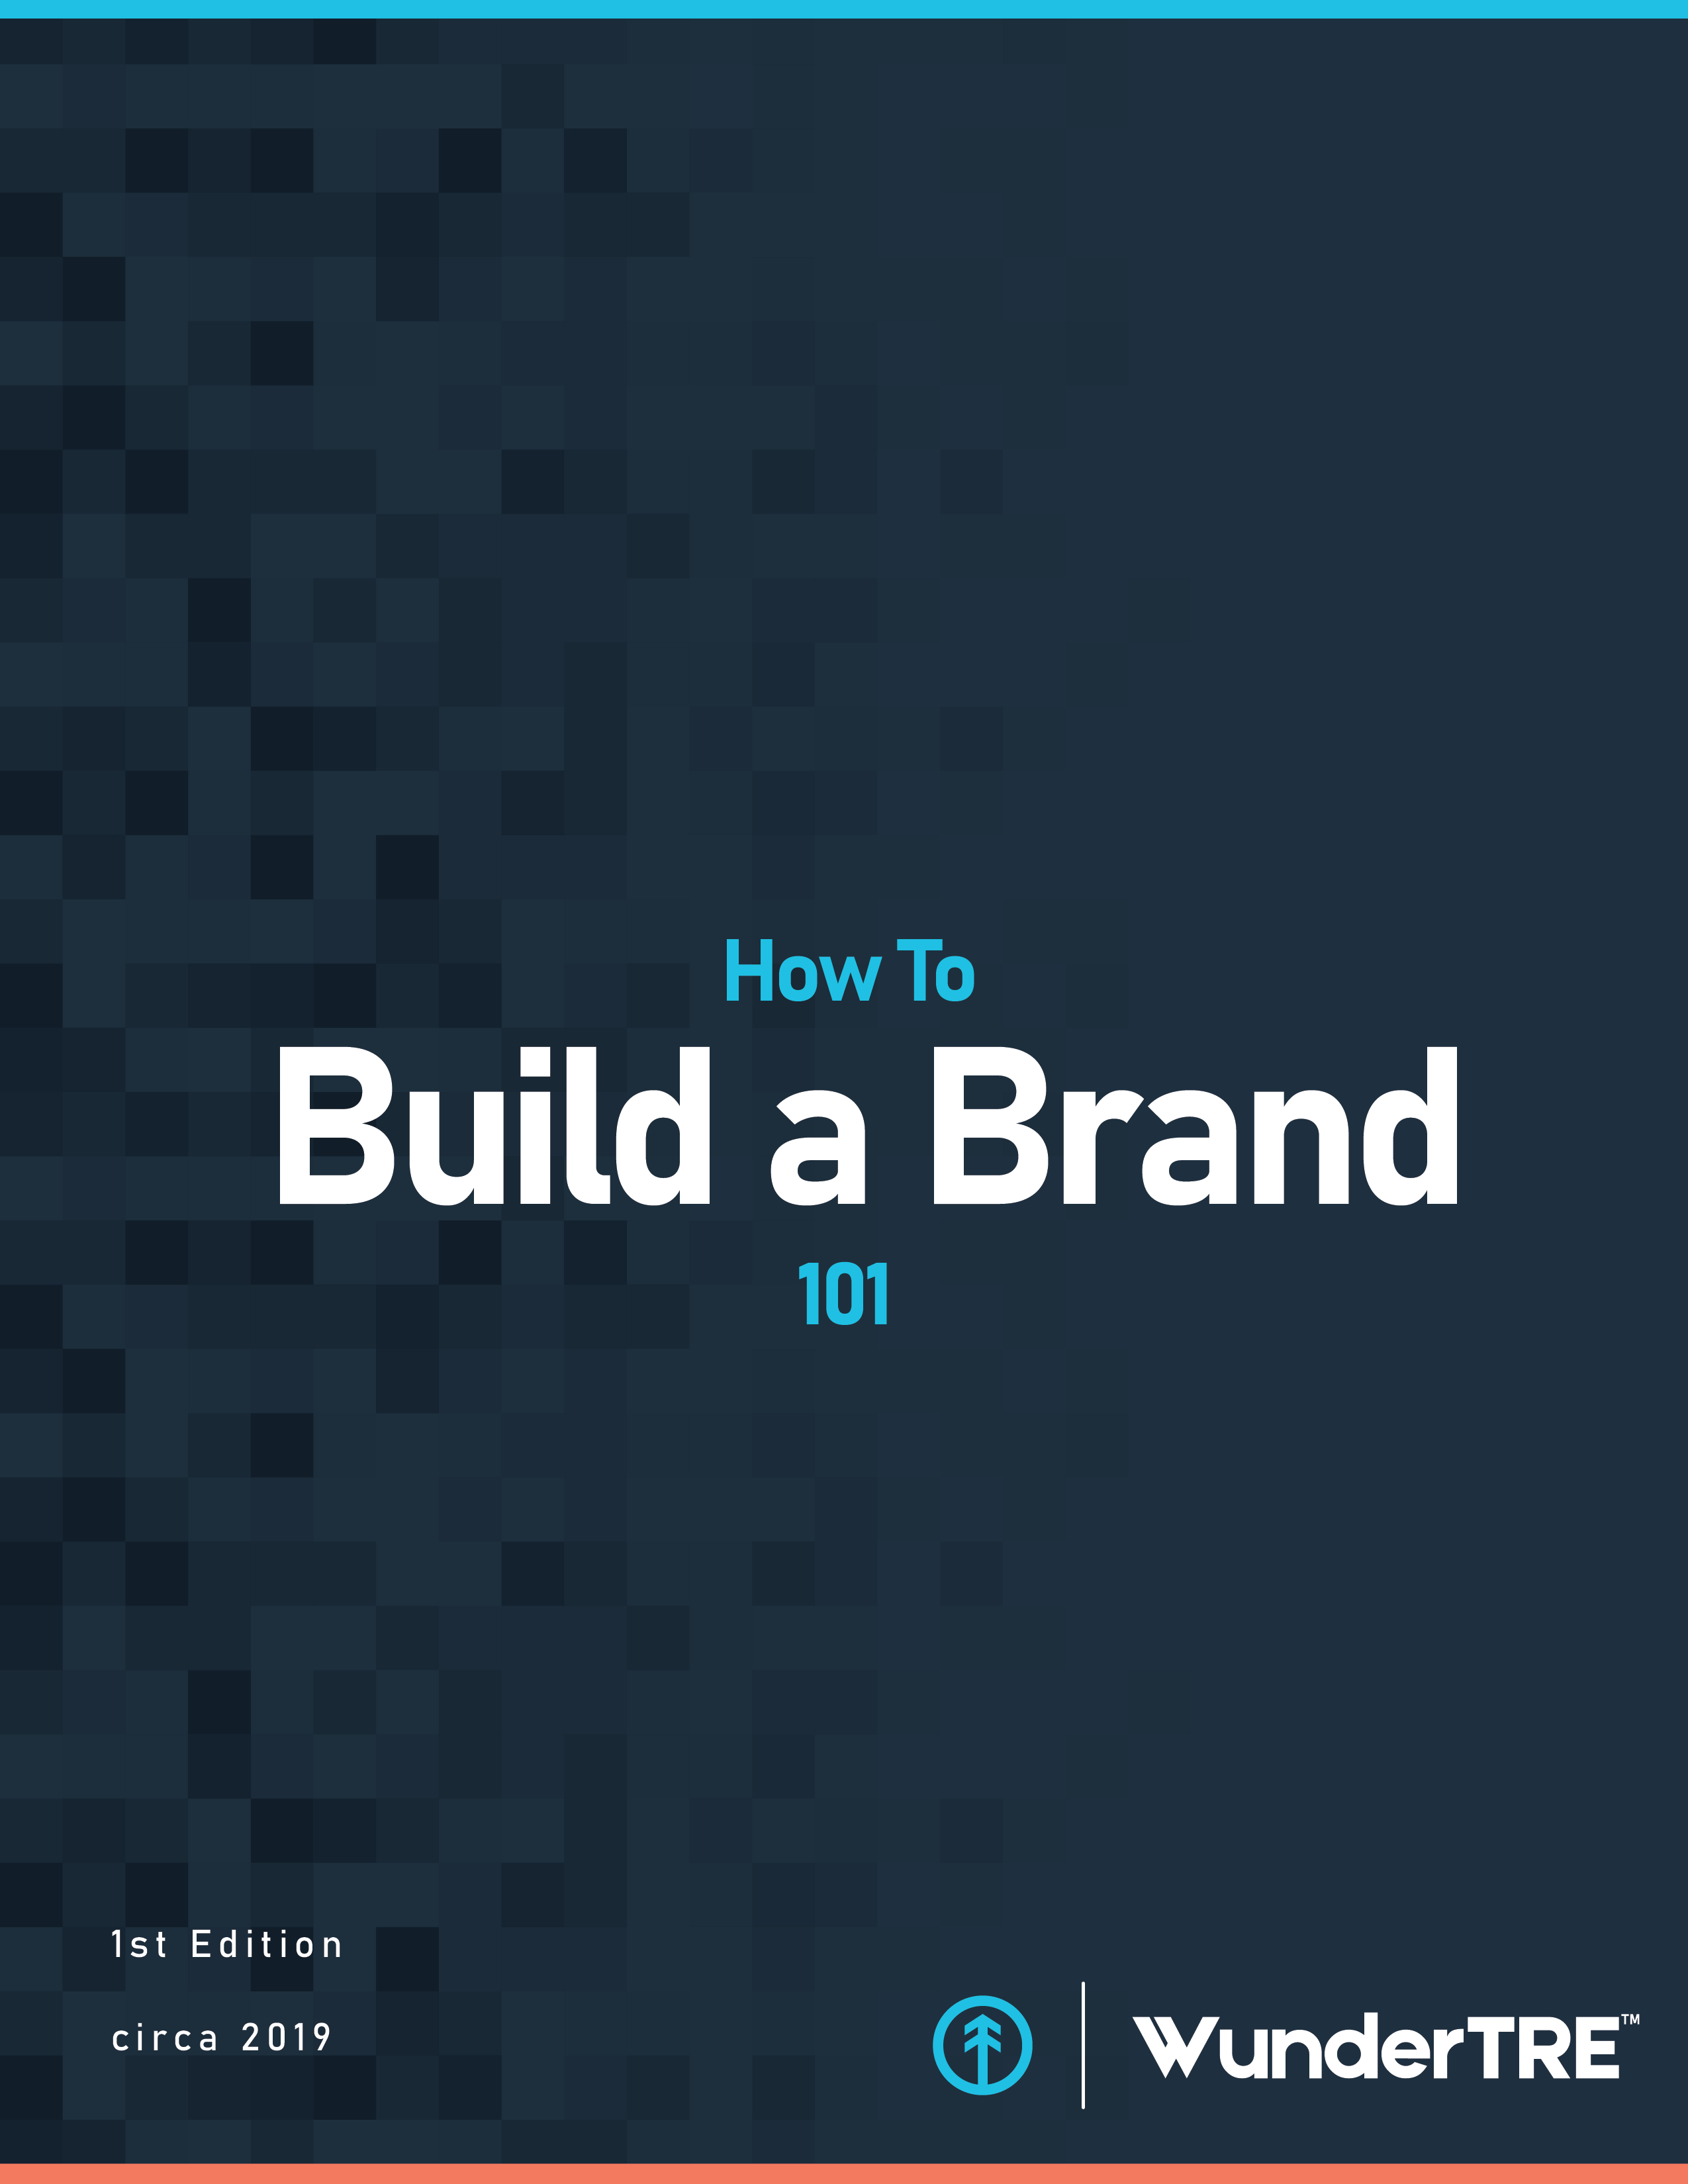 How to build a brand-01